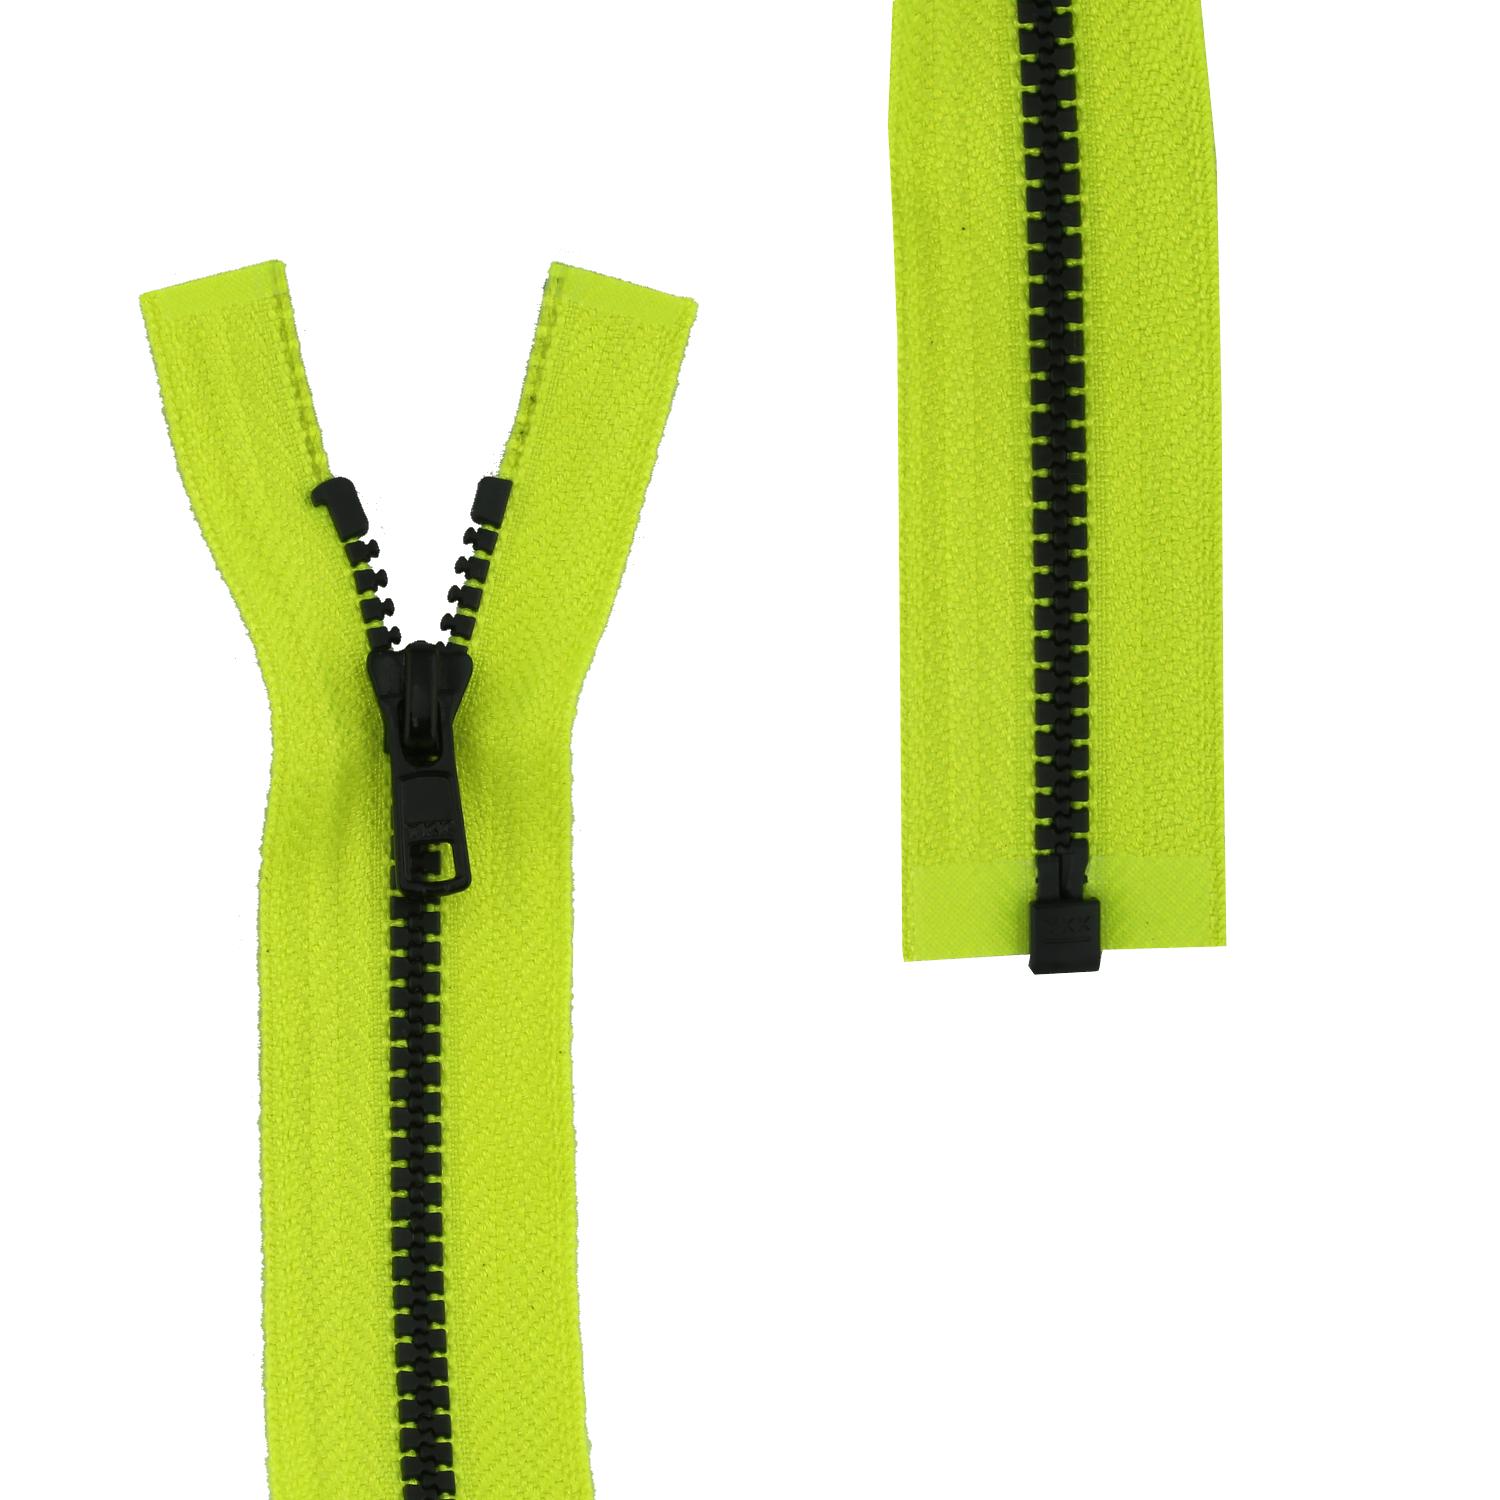 PNG image Green and black fabric zipper